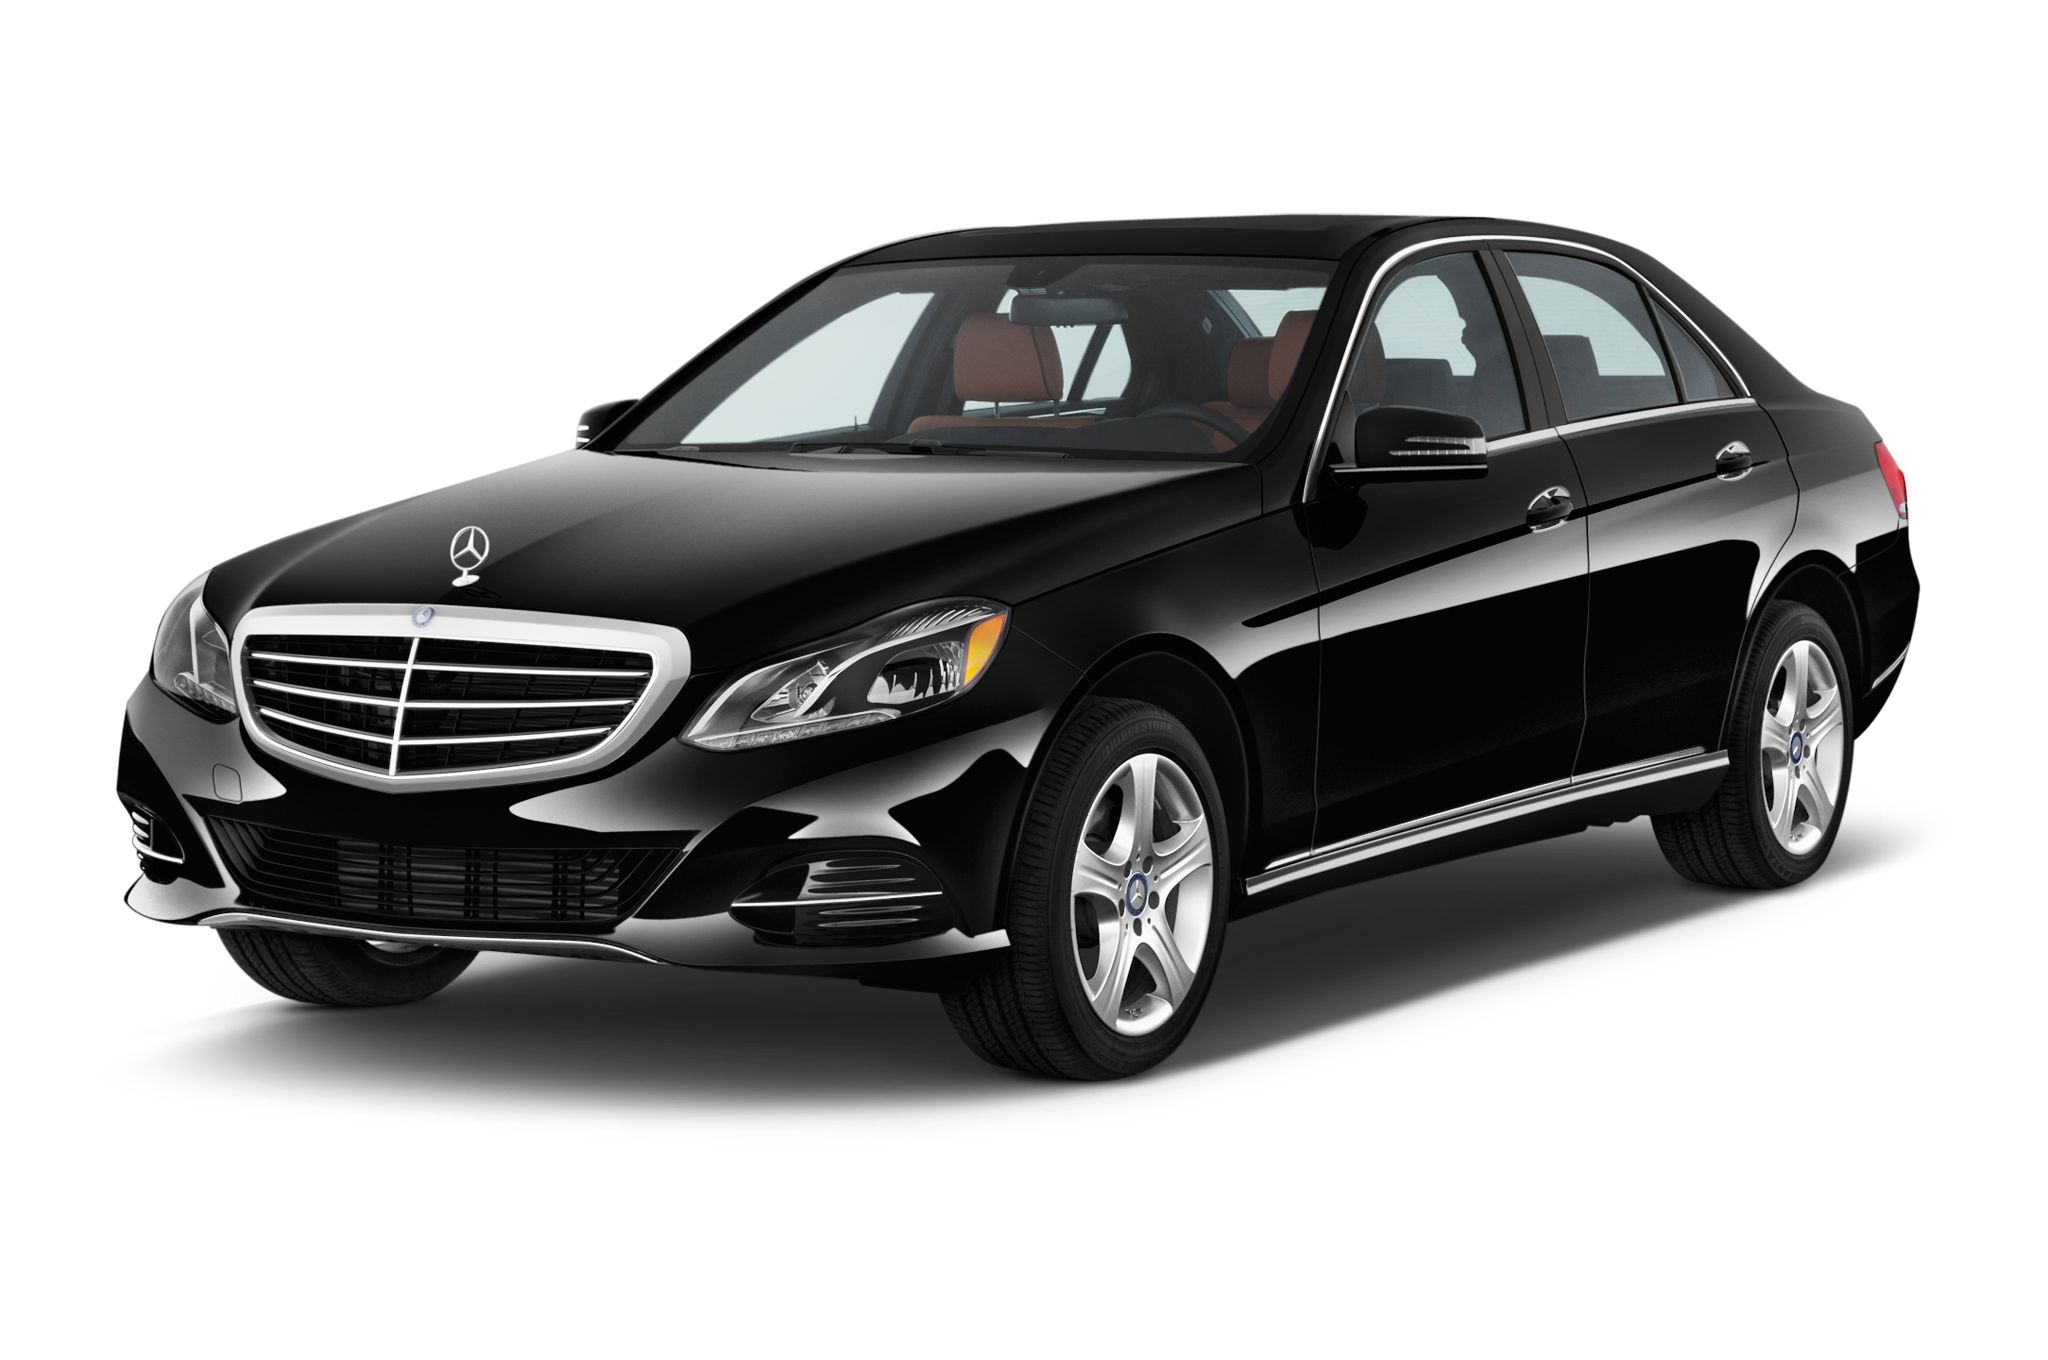 2015 mercedes benz e250 bluetec review. Black Bedroom Furniture Sets. Home Design Ideas